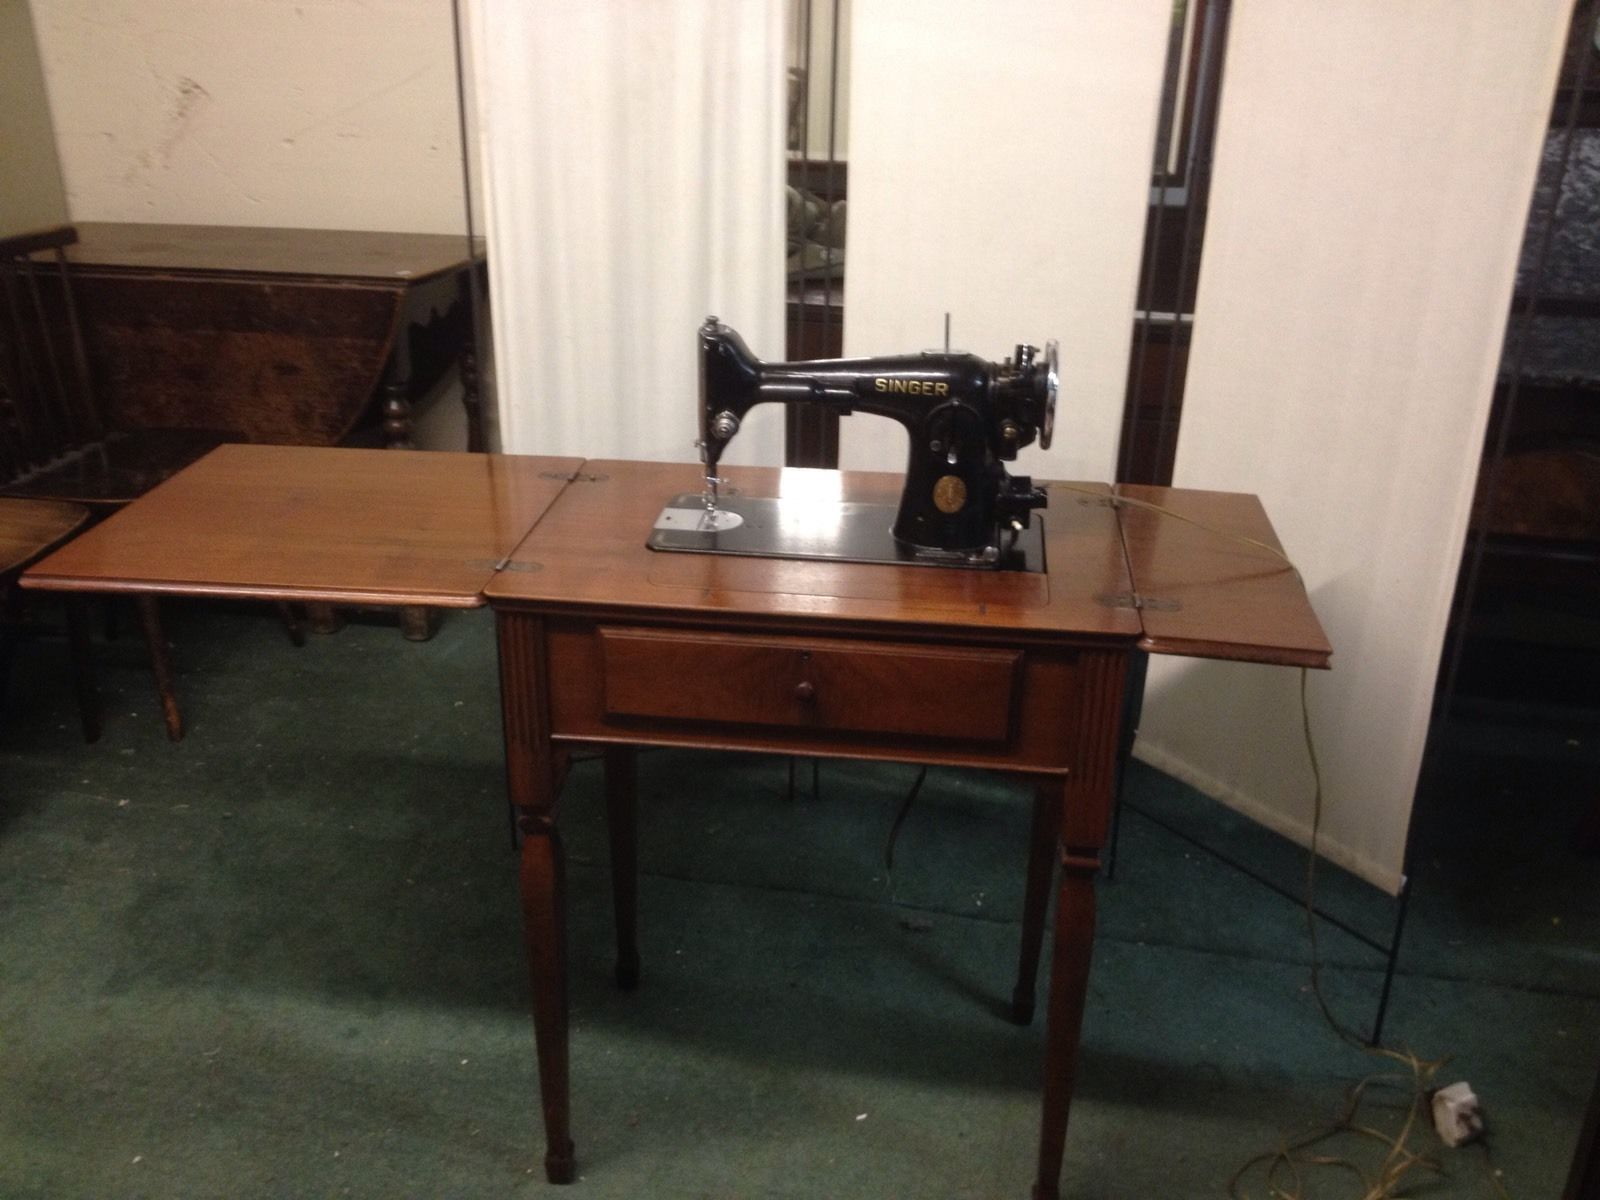 Vintage 1936 Singer Sewing Machine In Beautiful Wooden Cabinet 778